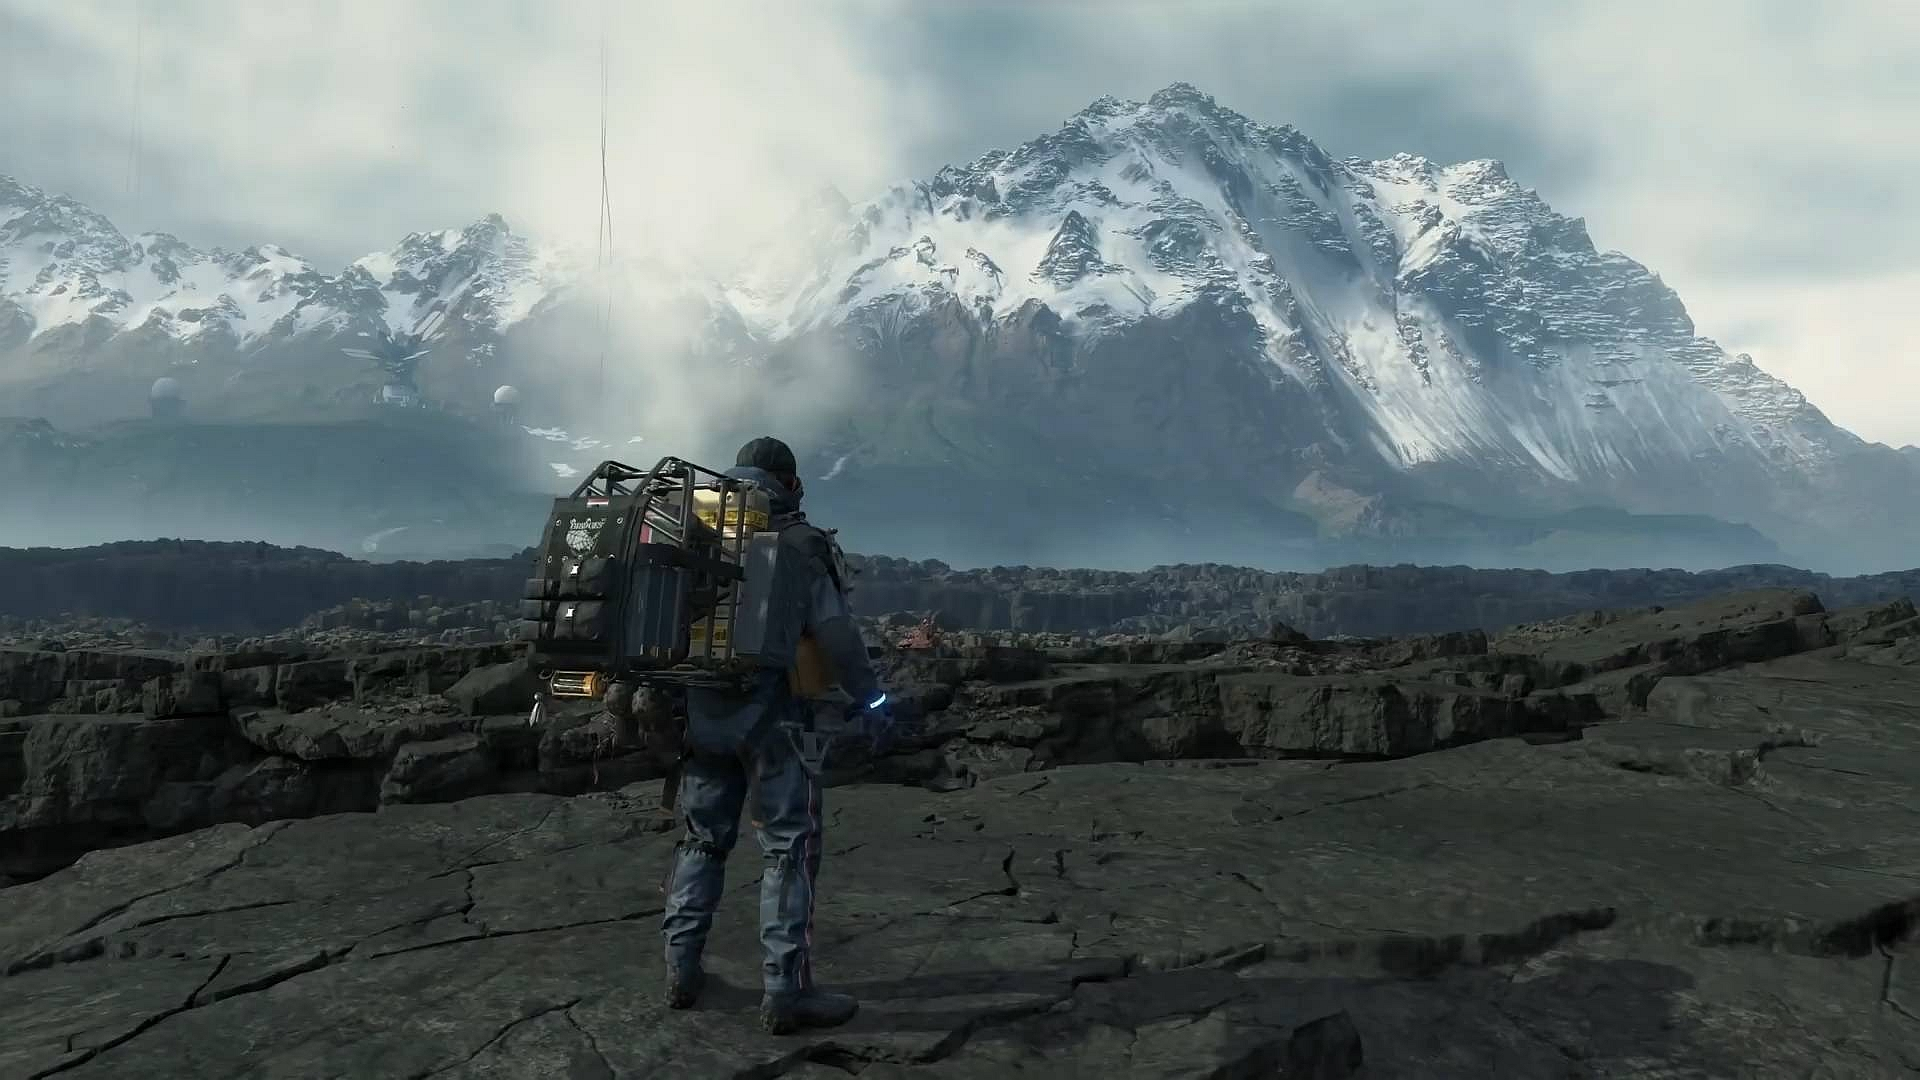 death stranding mountains